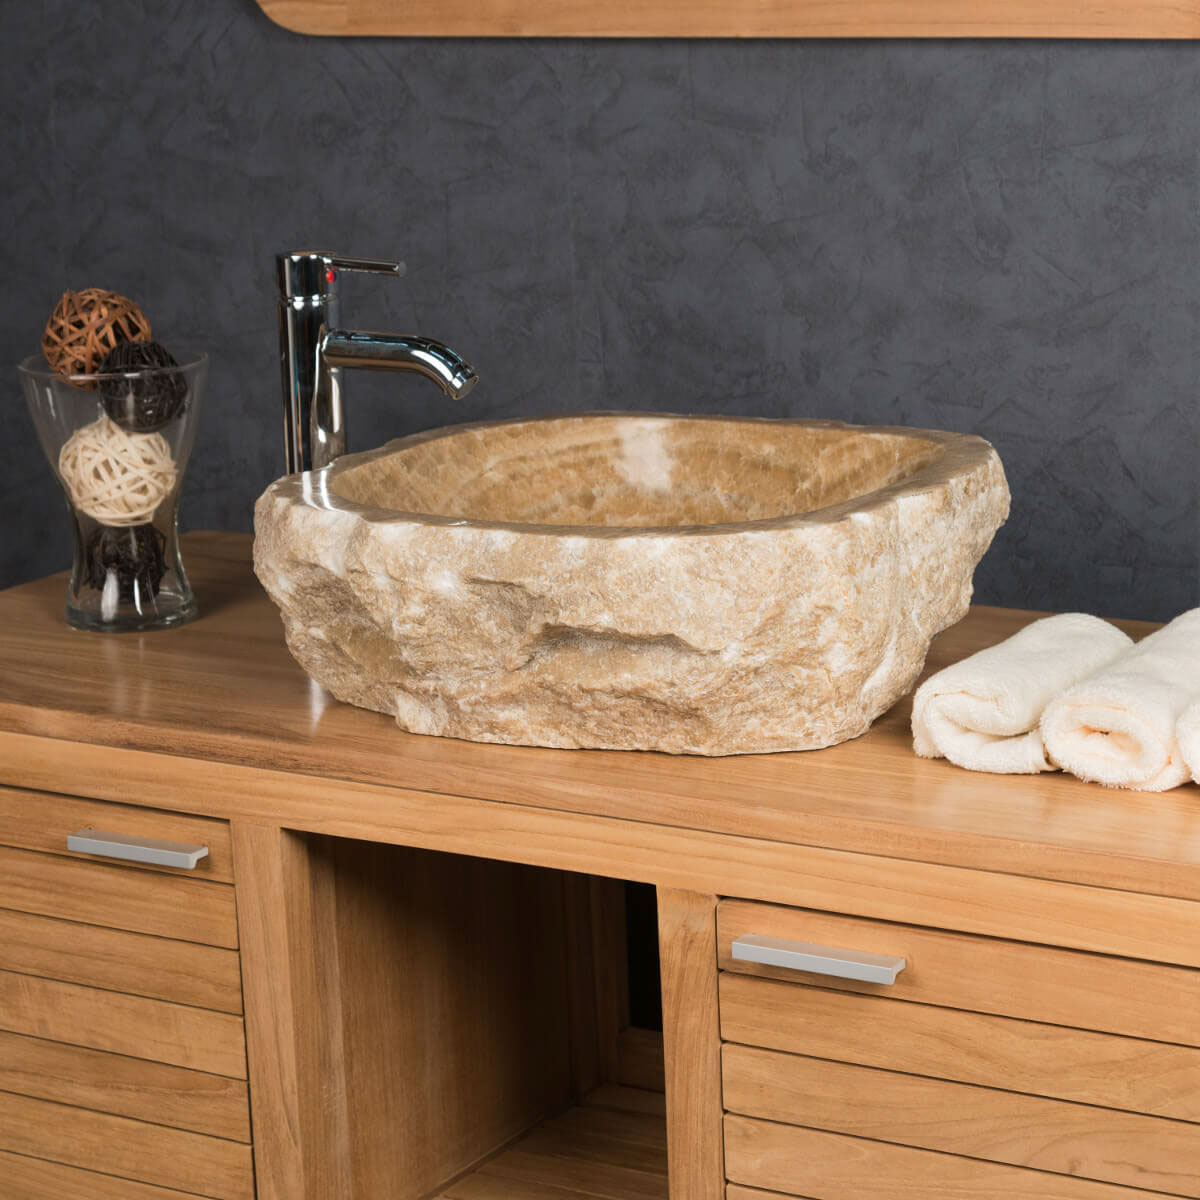 Vasque poser en pierre d 39 onyx l 40 45 cm for Salle de bain cottage